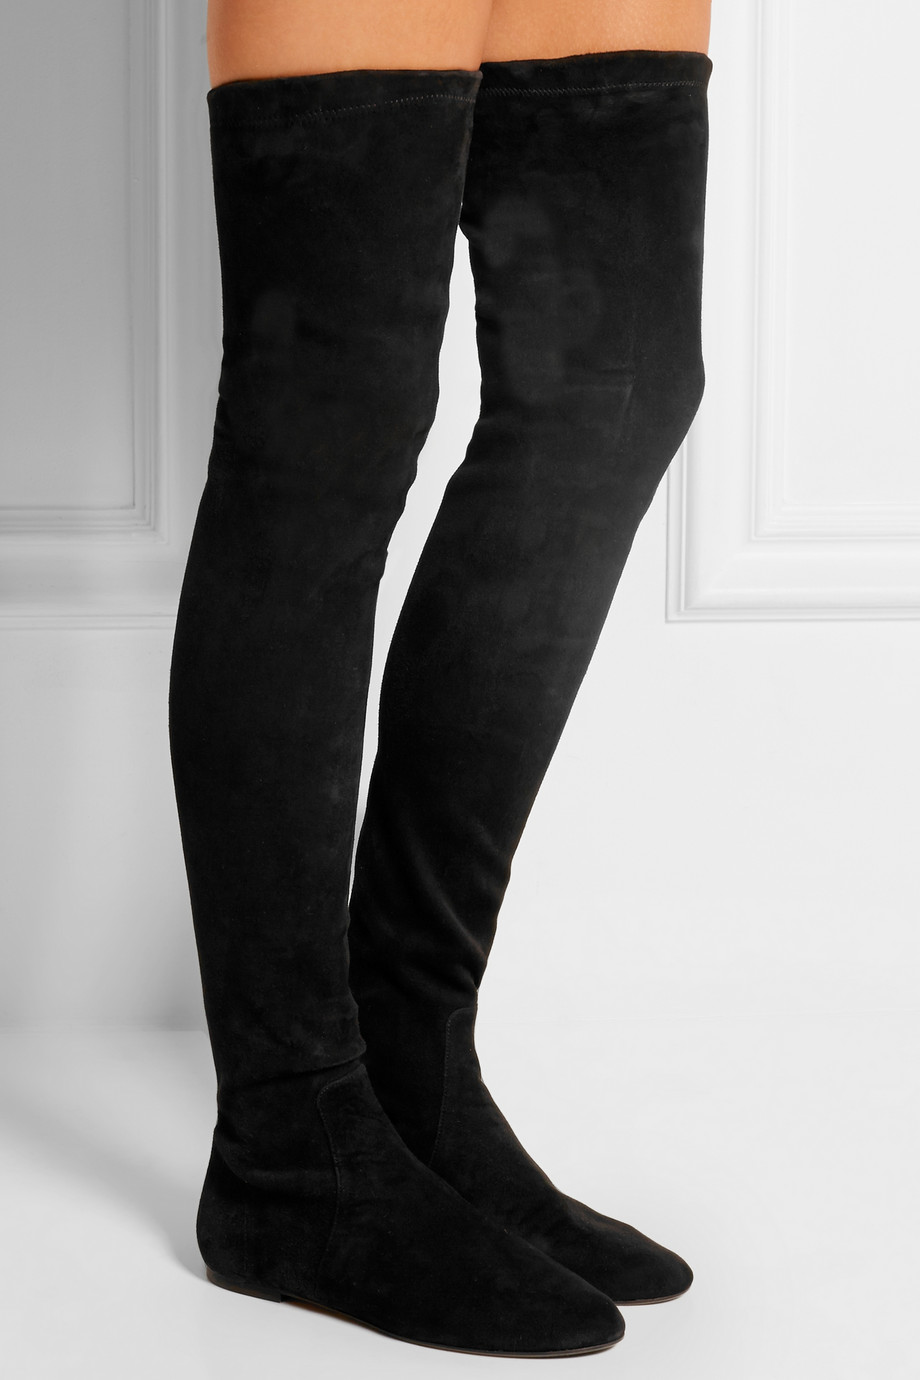 Isabel Marant's 'Brenna' over-the-knee boots